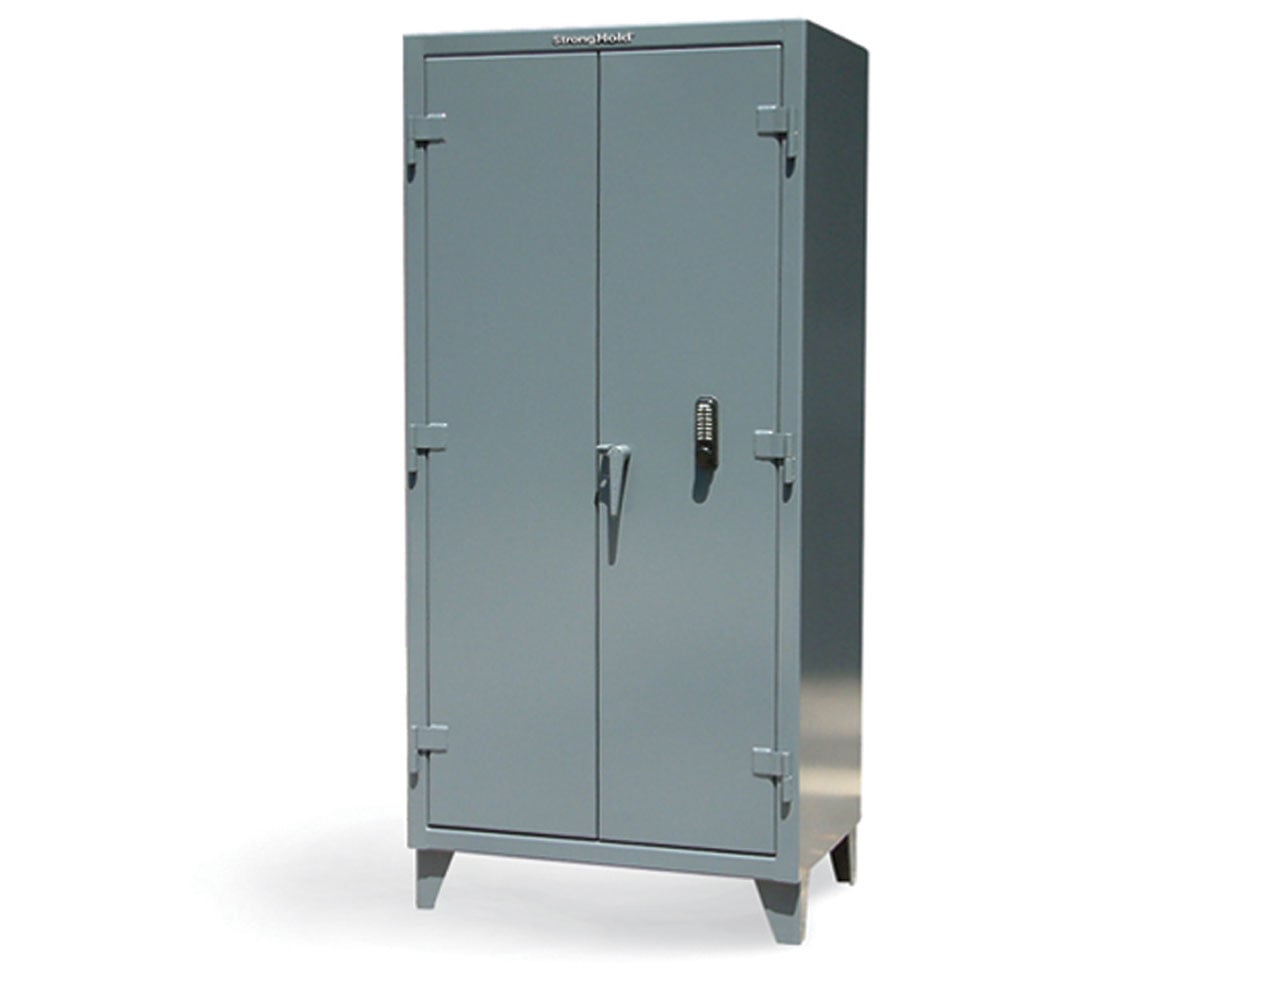 Extra Heavy Duty 12 GA Cabinet with Keypad, 4 Shelves – 36 In. W x 24 In. D x 78 In. H